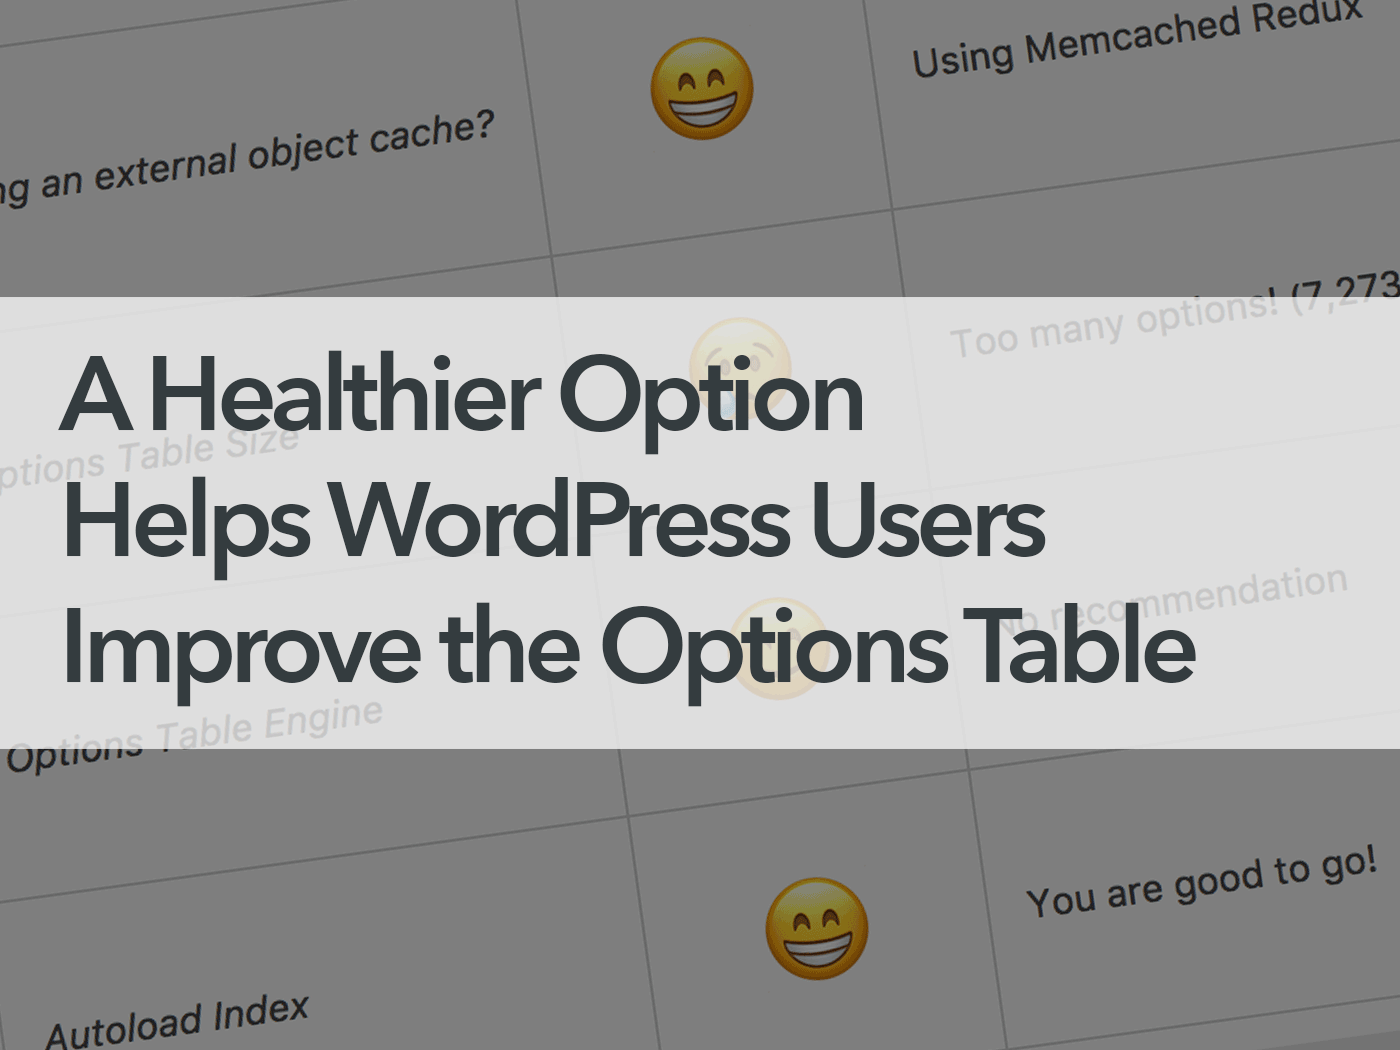 A Healthier Option Helps WordPress Users Improve the Options Table